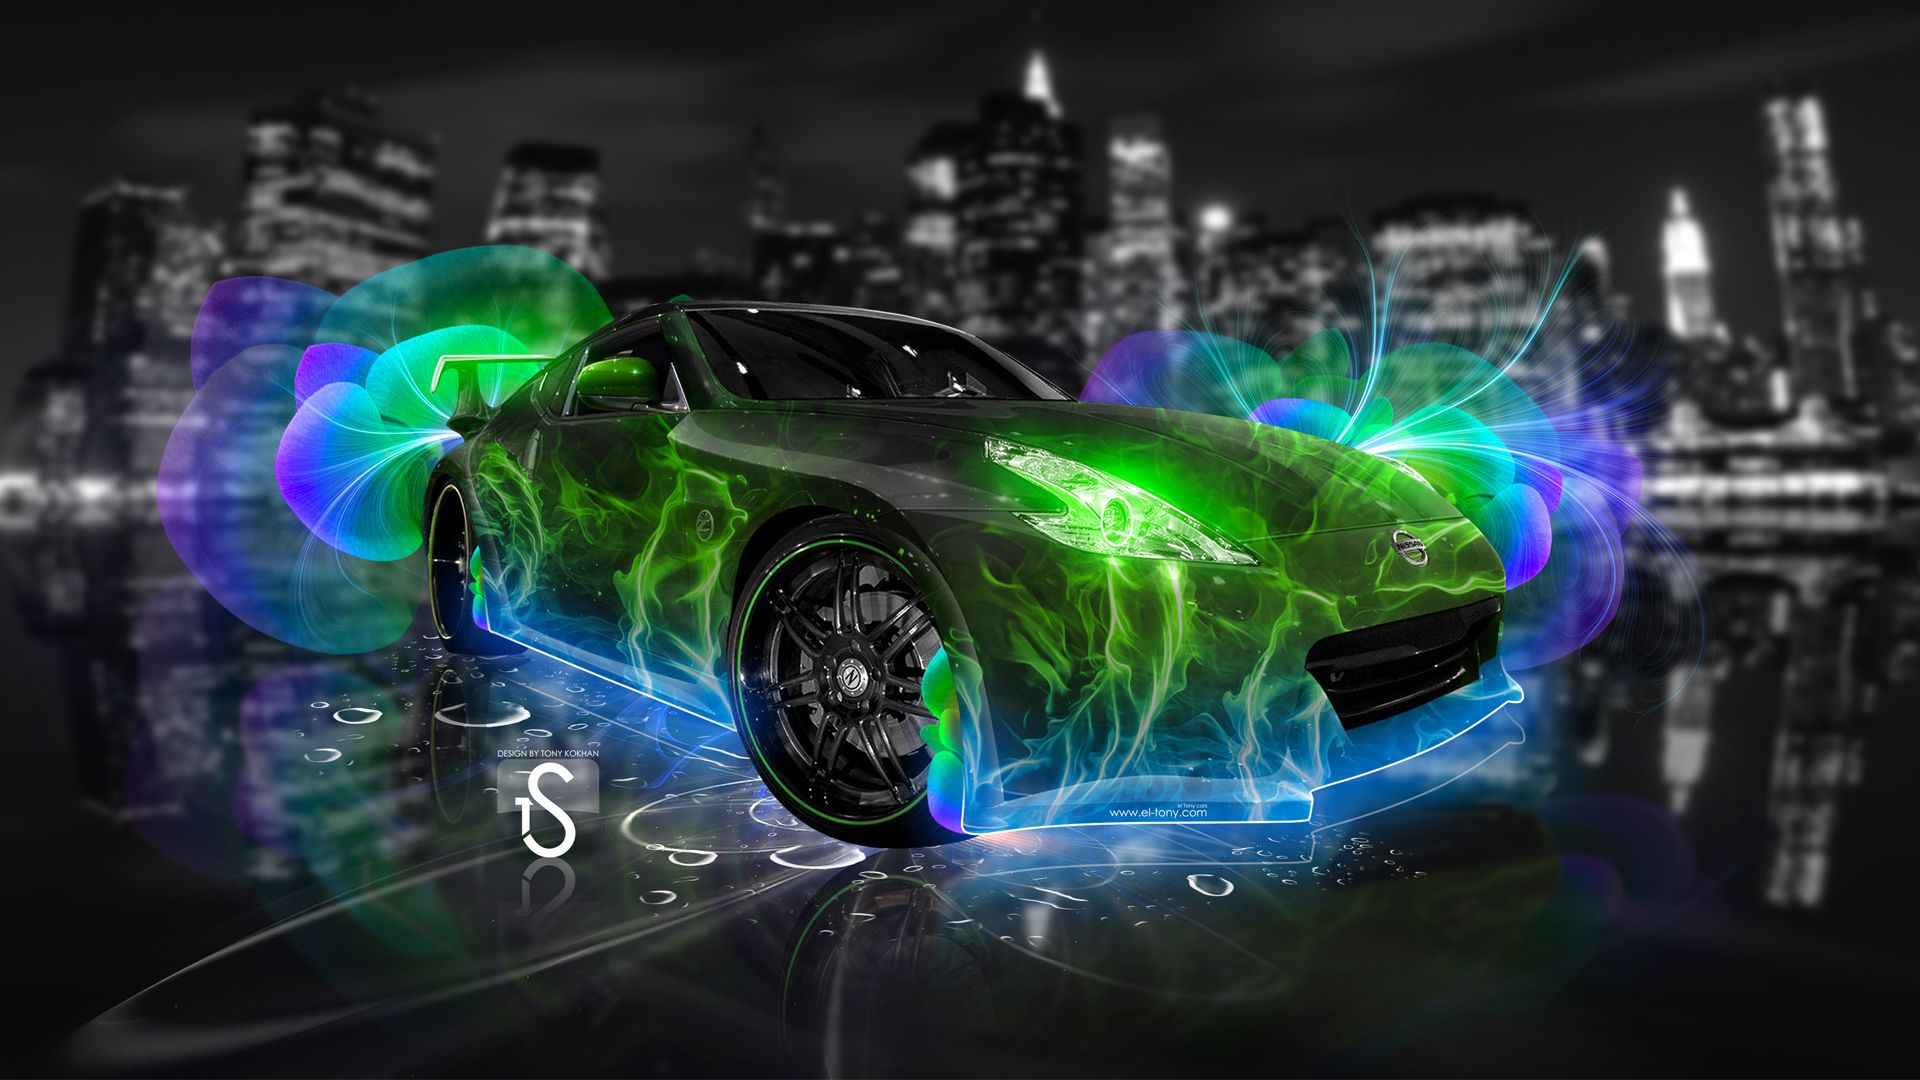 Nissan 370 Z Super Abstract Car Art Cool Cars Nissan Amazing Cars